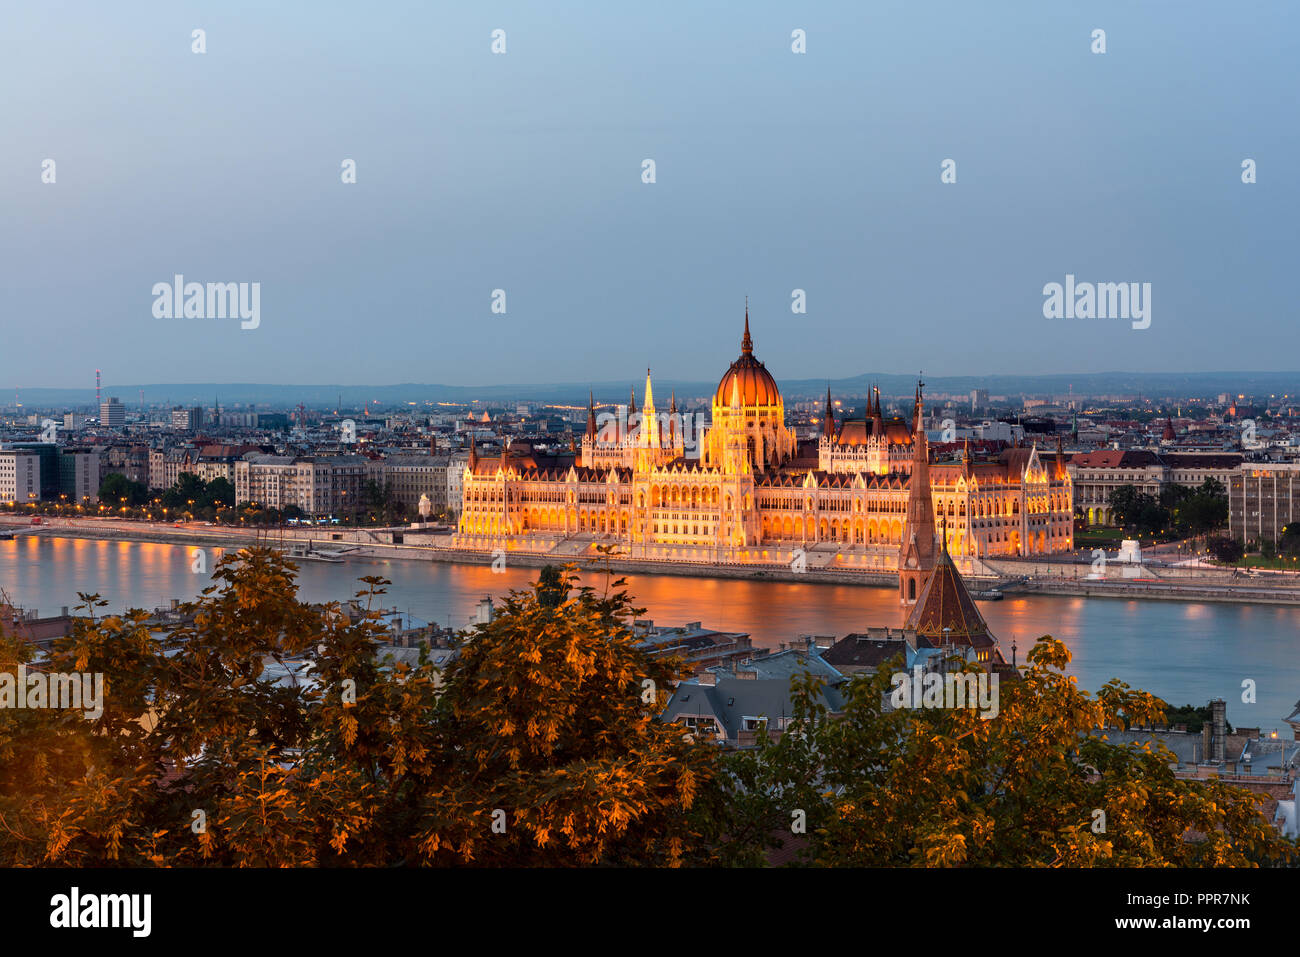 Panorama view of the illuminated Hungarian Parliament across the river Danube at dusk, Budapest. Long exposure. - Stock Image